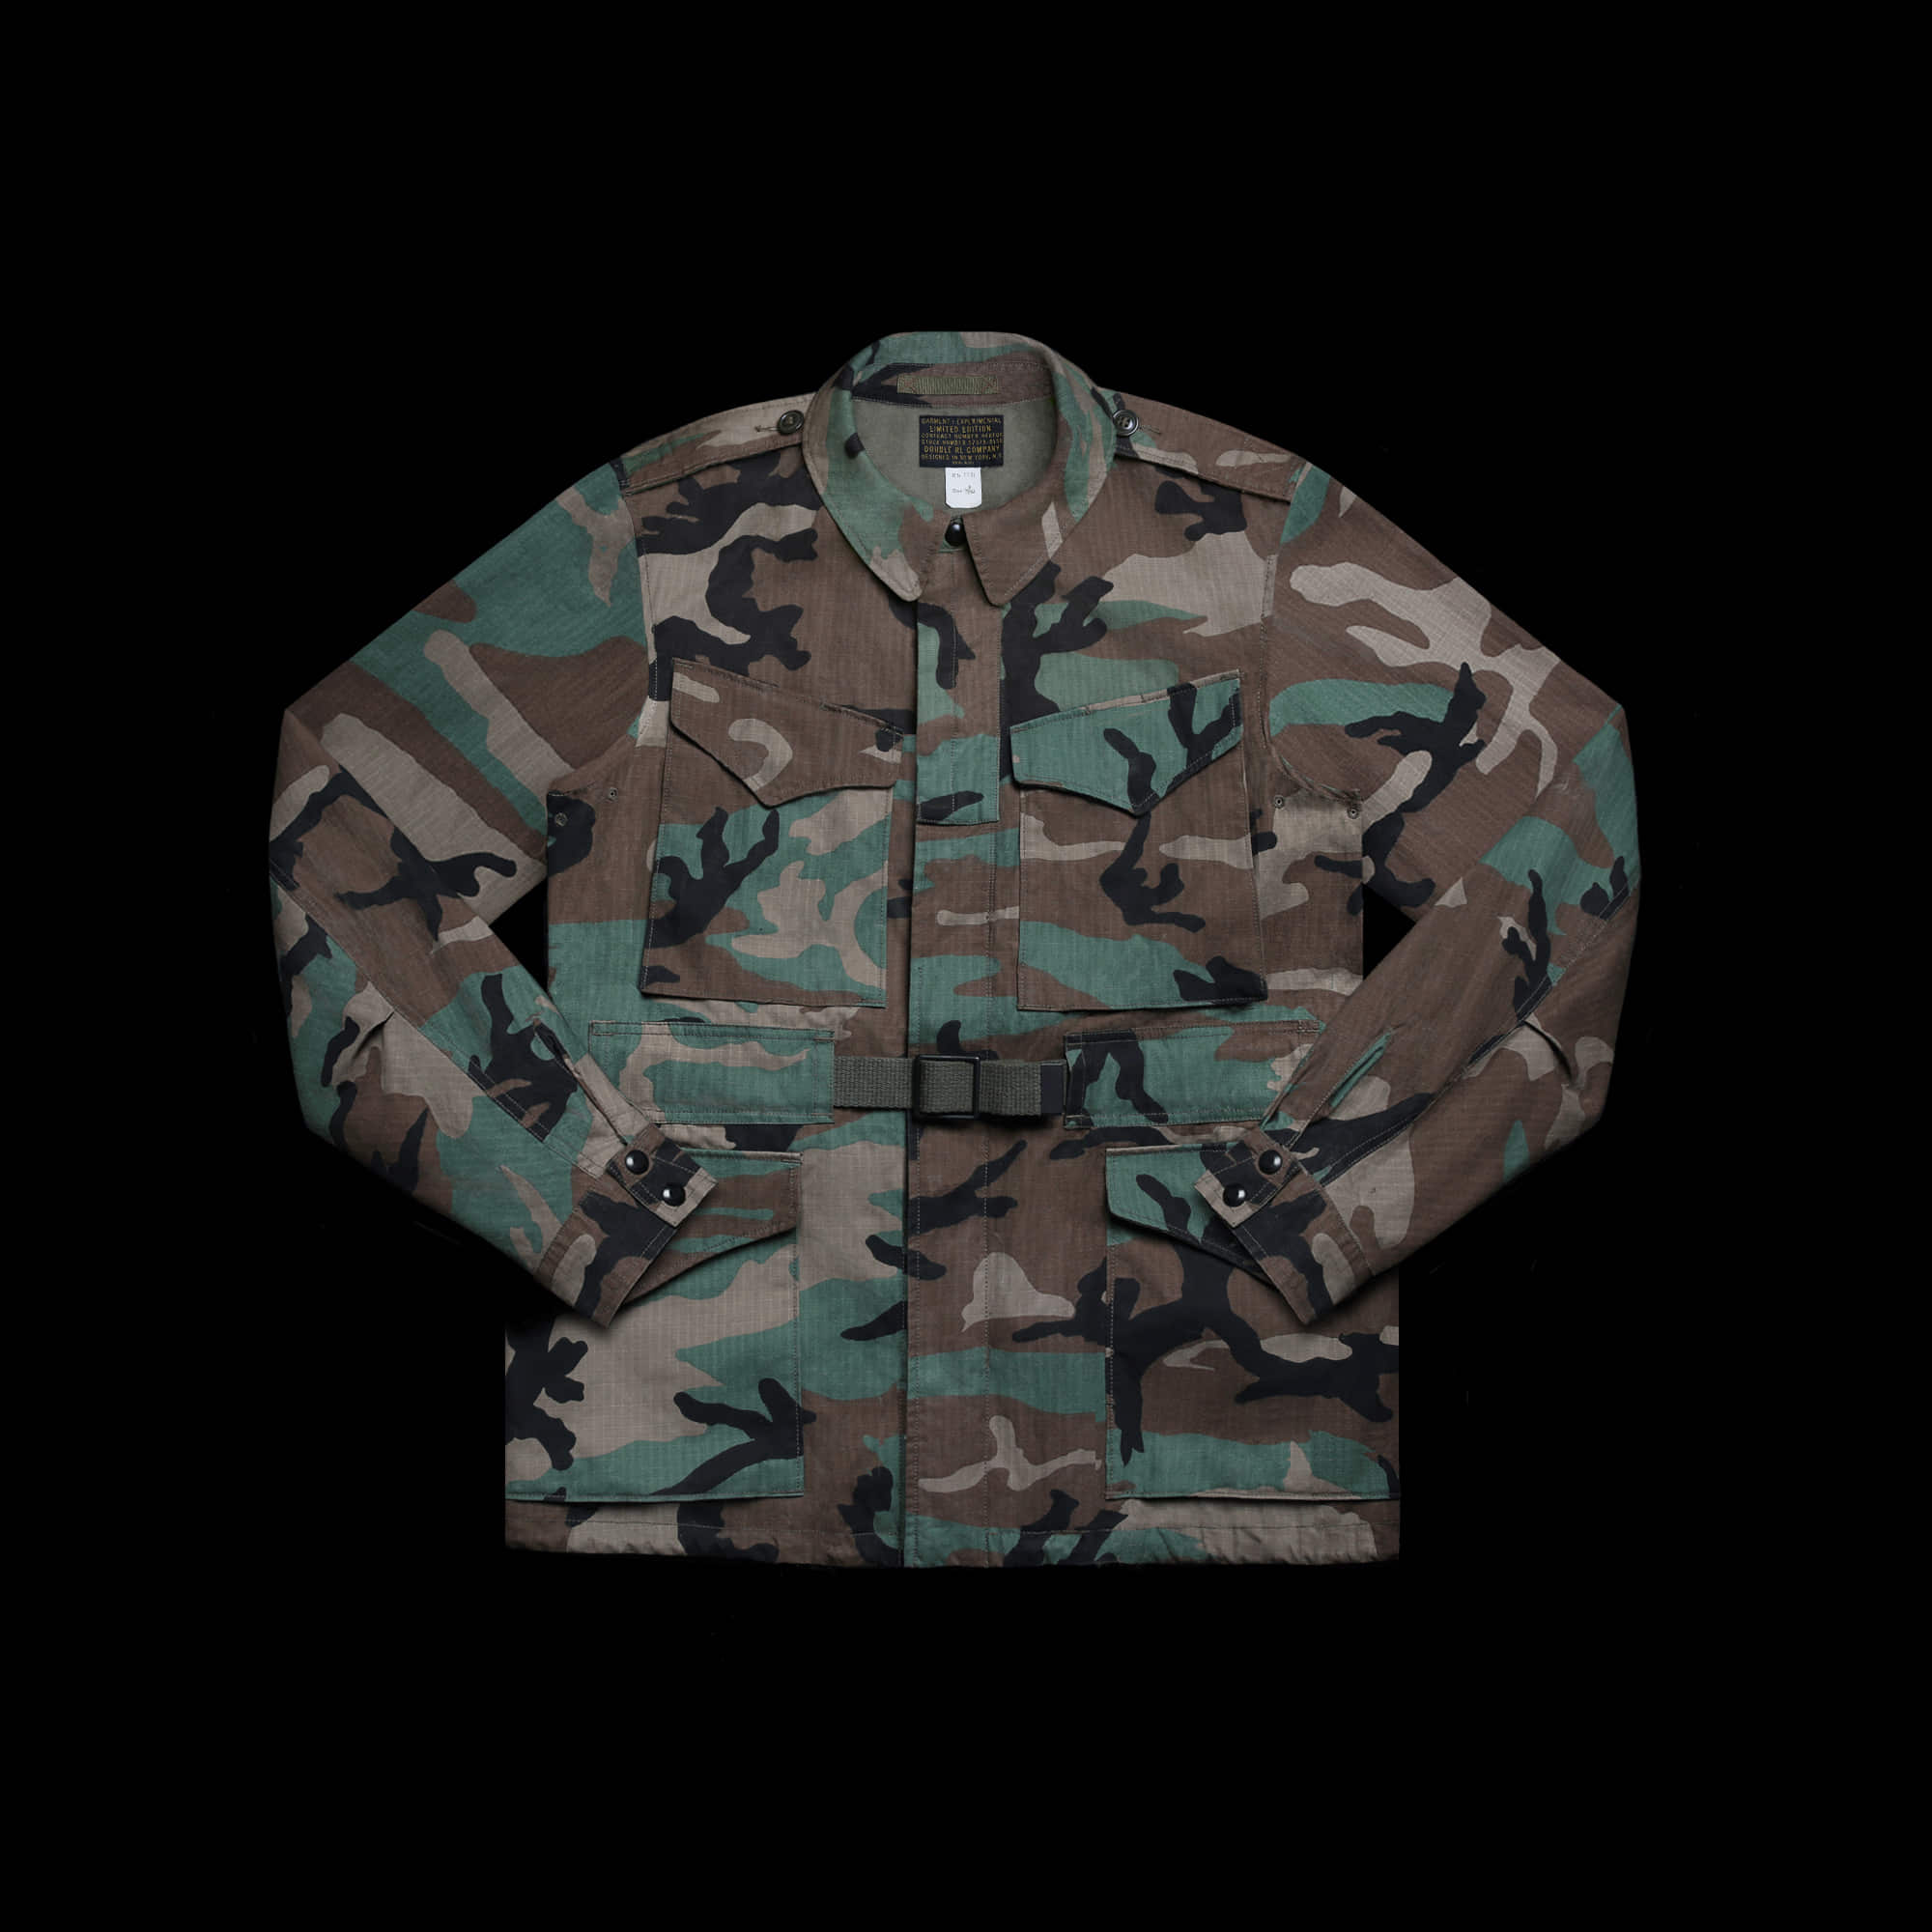 RRLLIMITED EDITIONCAMO PARATROOPERFIELD JACKET